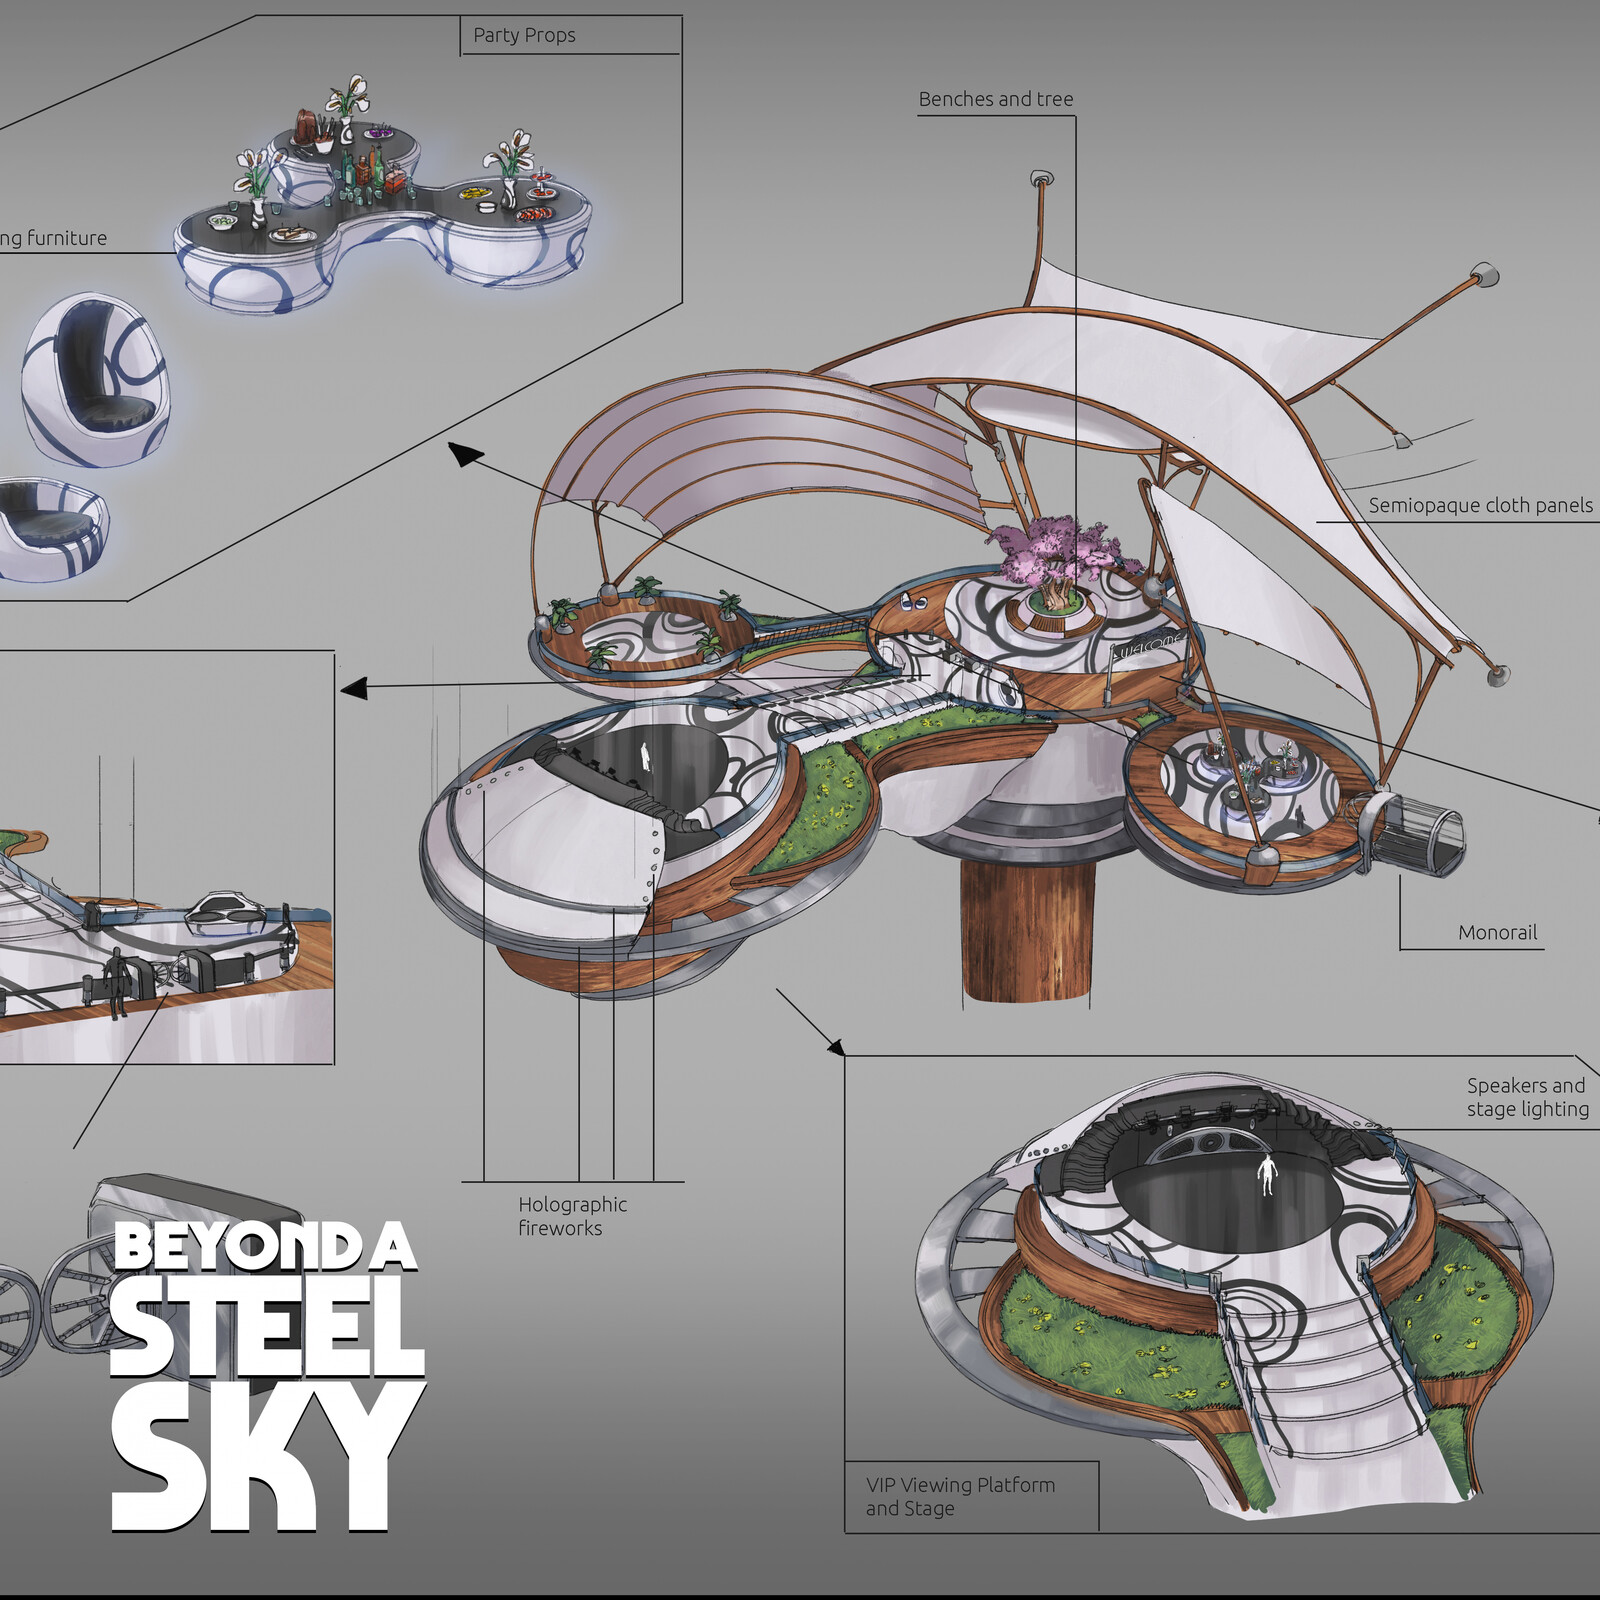 BEYOND A STEEL SKY: Aspiration Platform